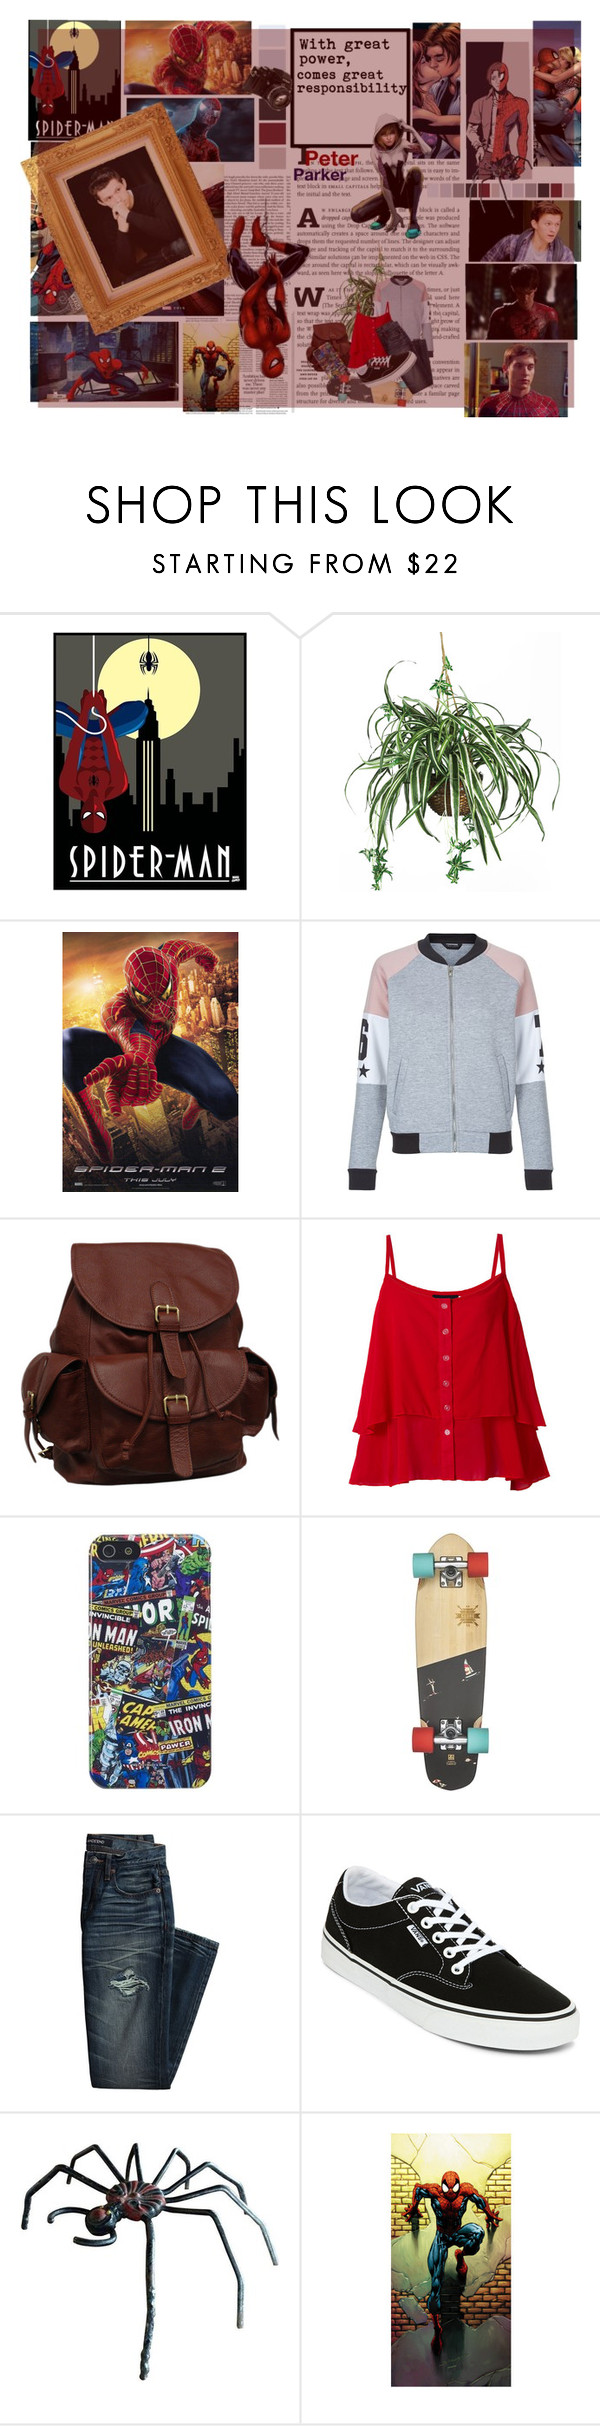 """""""01. Spiderman"""" by buyureyes ❤ liked on Polyvore featuring Marvel, New Look, AmeriLeather, Marvel Comics, Canvas by Lands' End, Vans, Nikon, RoomMates Decor and superheroes"""